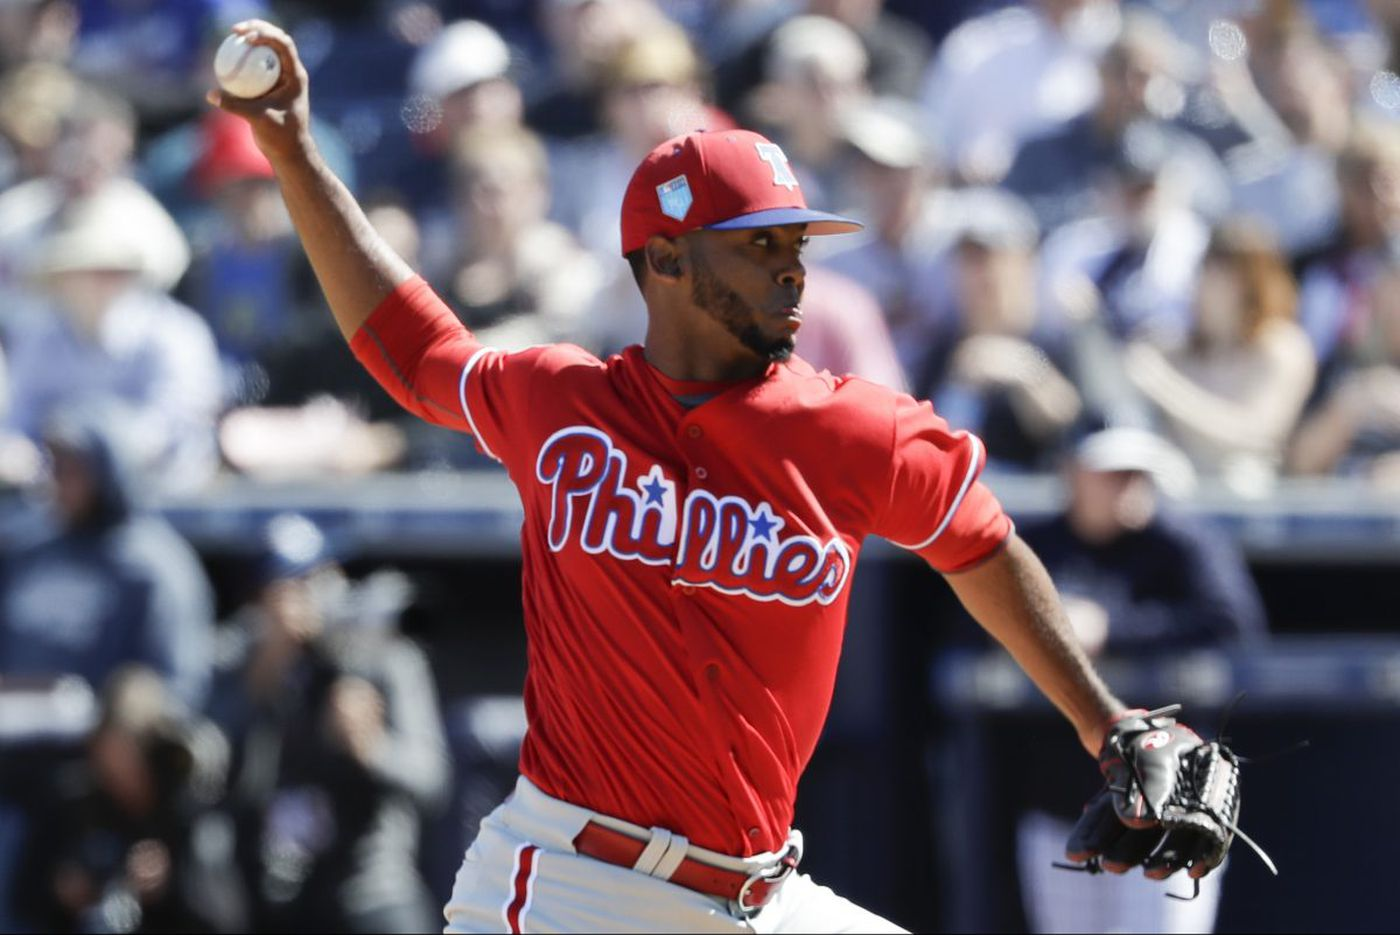 Gabe Kapler goes to Reading for Phillies prospect Seranthony Dominguez and a 'great steak'